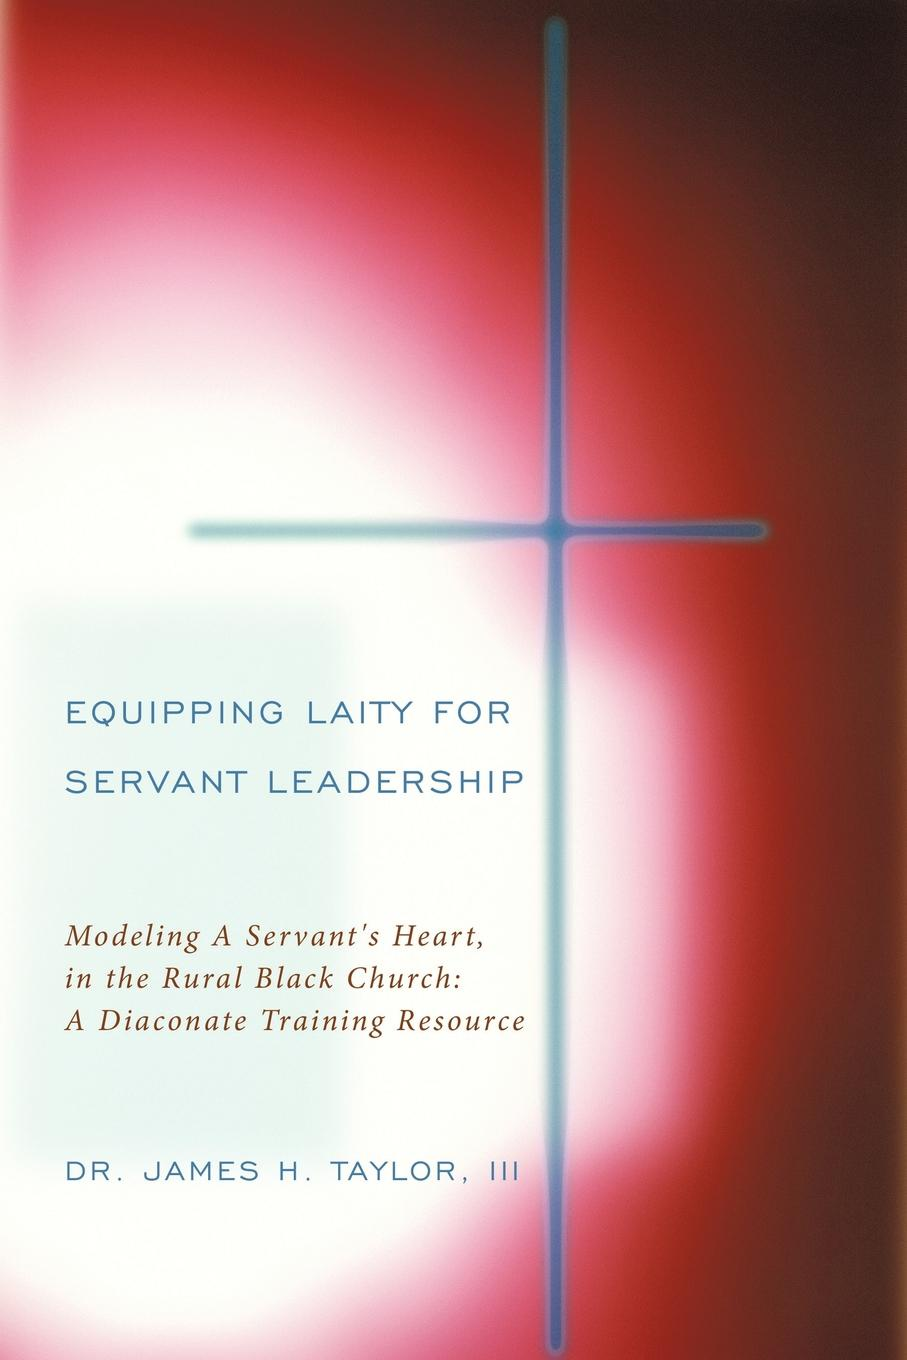 III Dr. James H. Taylor Equipping Laity For Servant Leadership. Modeling A Servant.s Heart, in the Rural Black Church: A Diaconate Training Resource m udovichenko the stargazer s servant